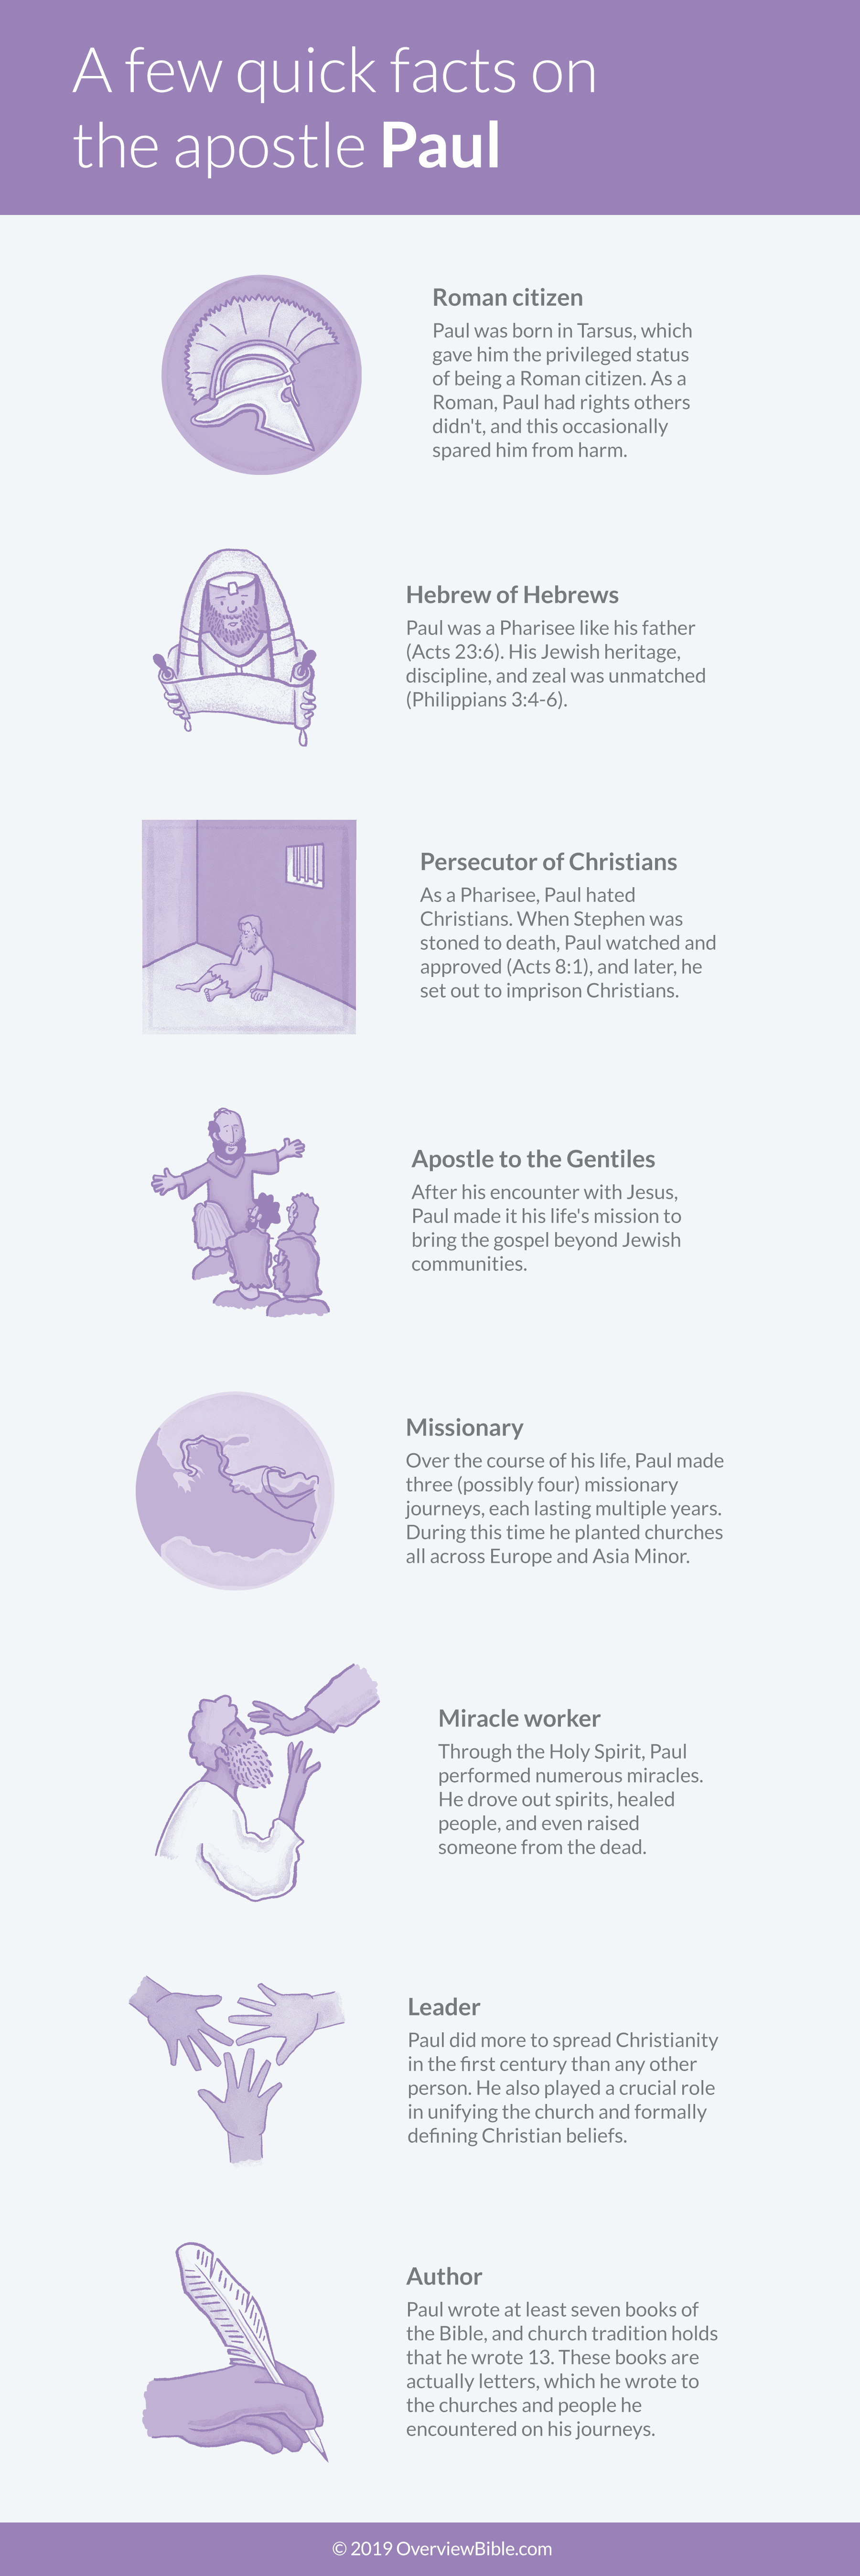 an infographic with basic facts about Saint Paul